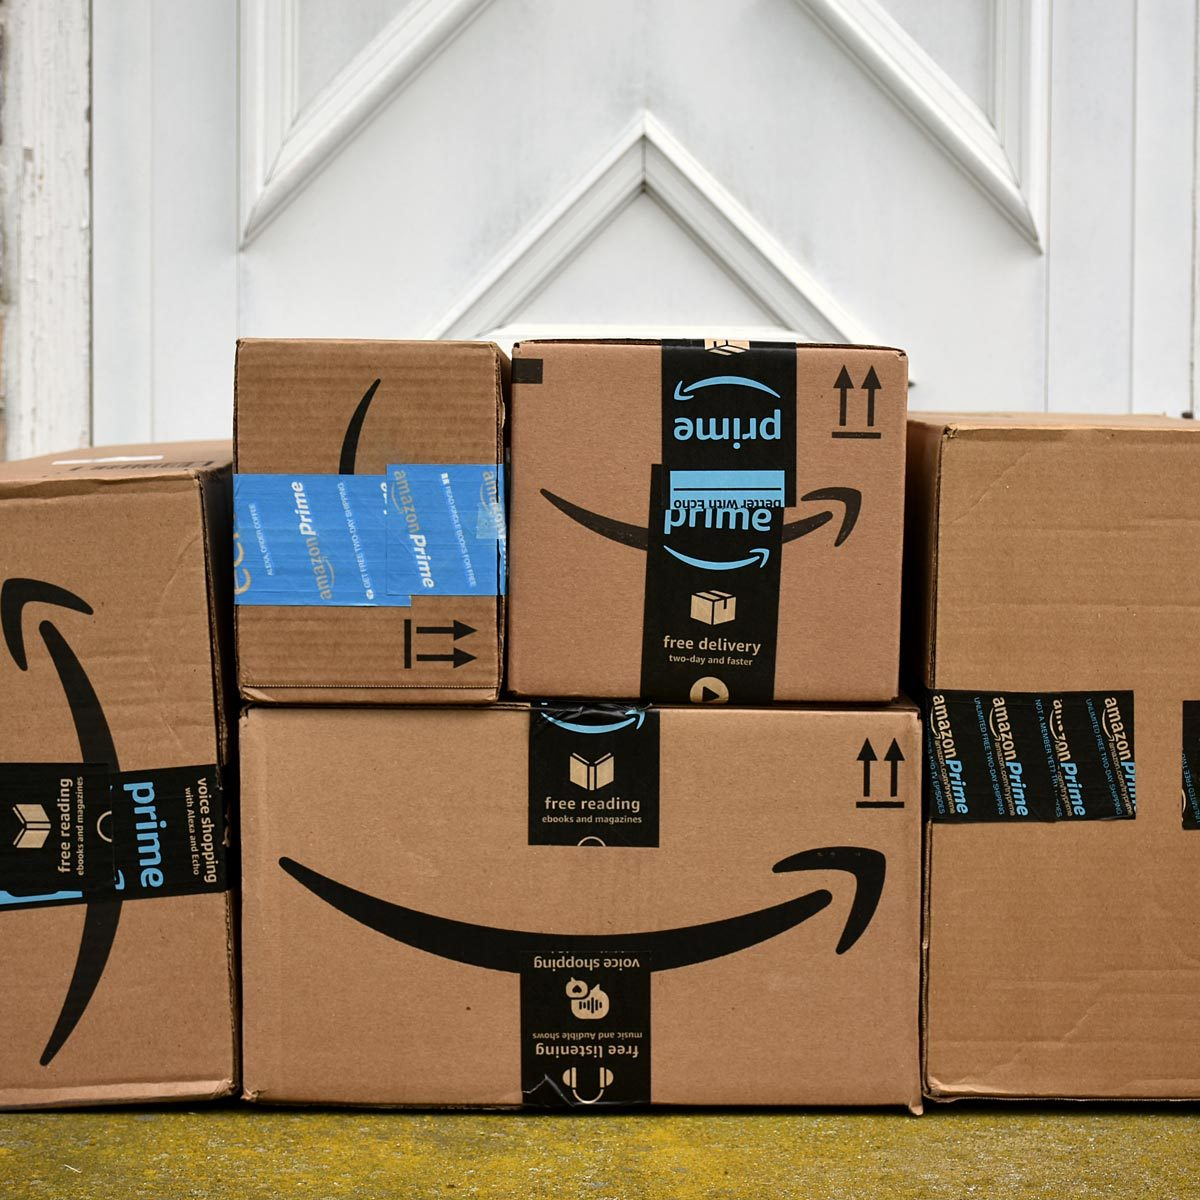 Amazon-boxes-in-front-of-a-white-door